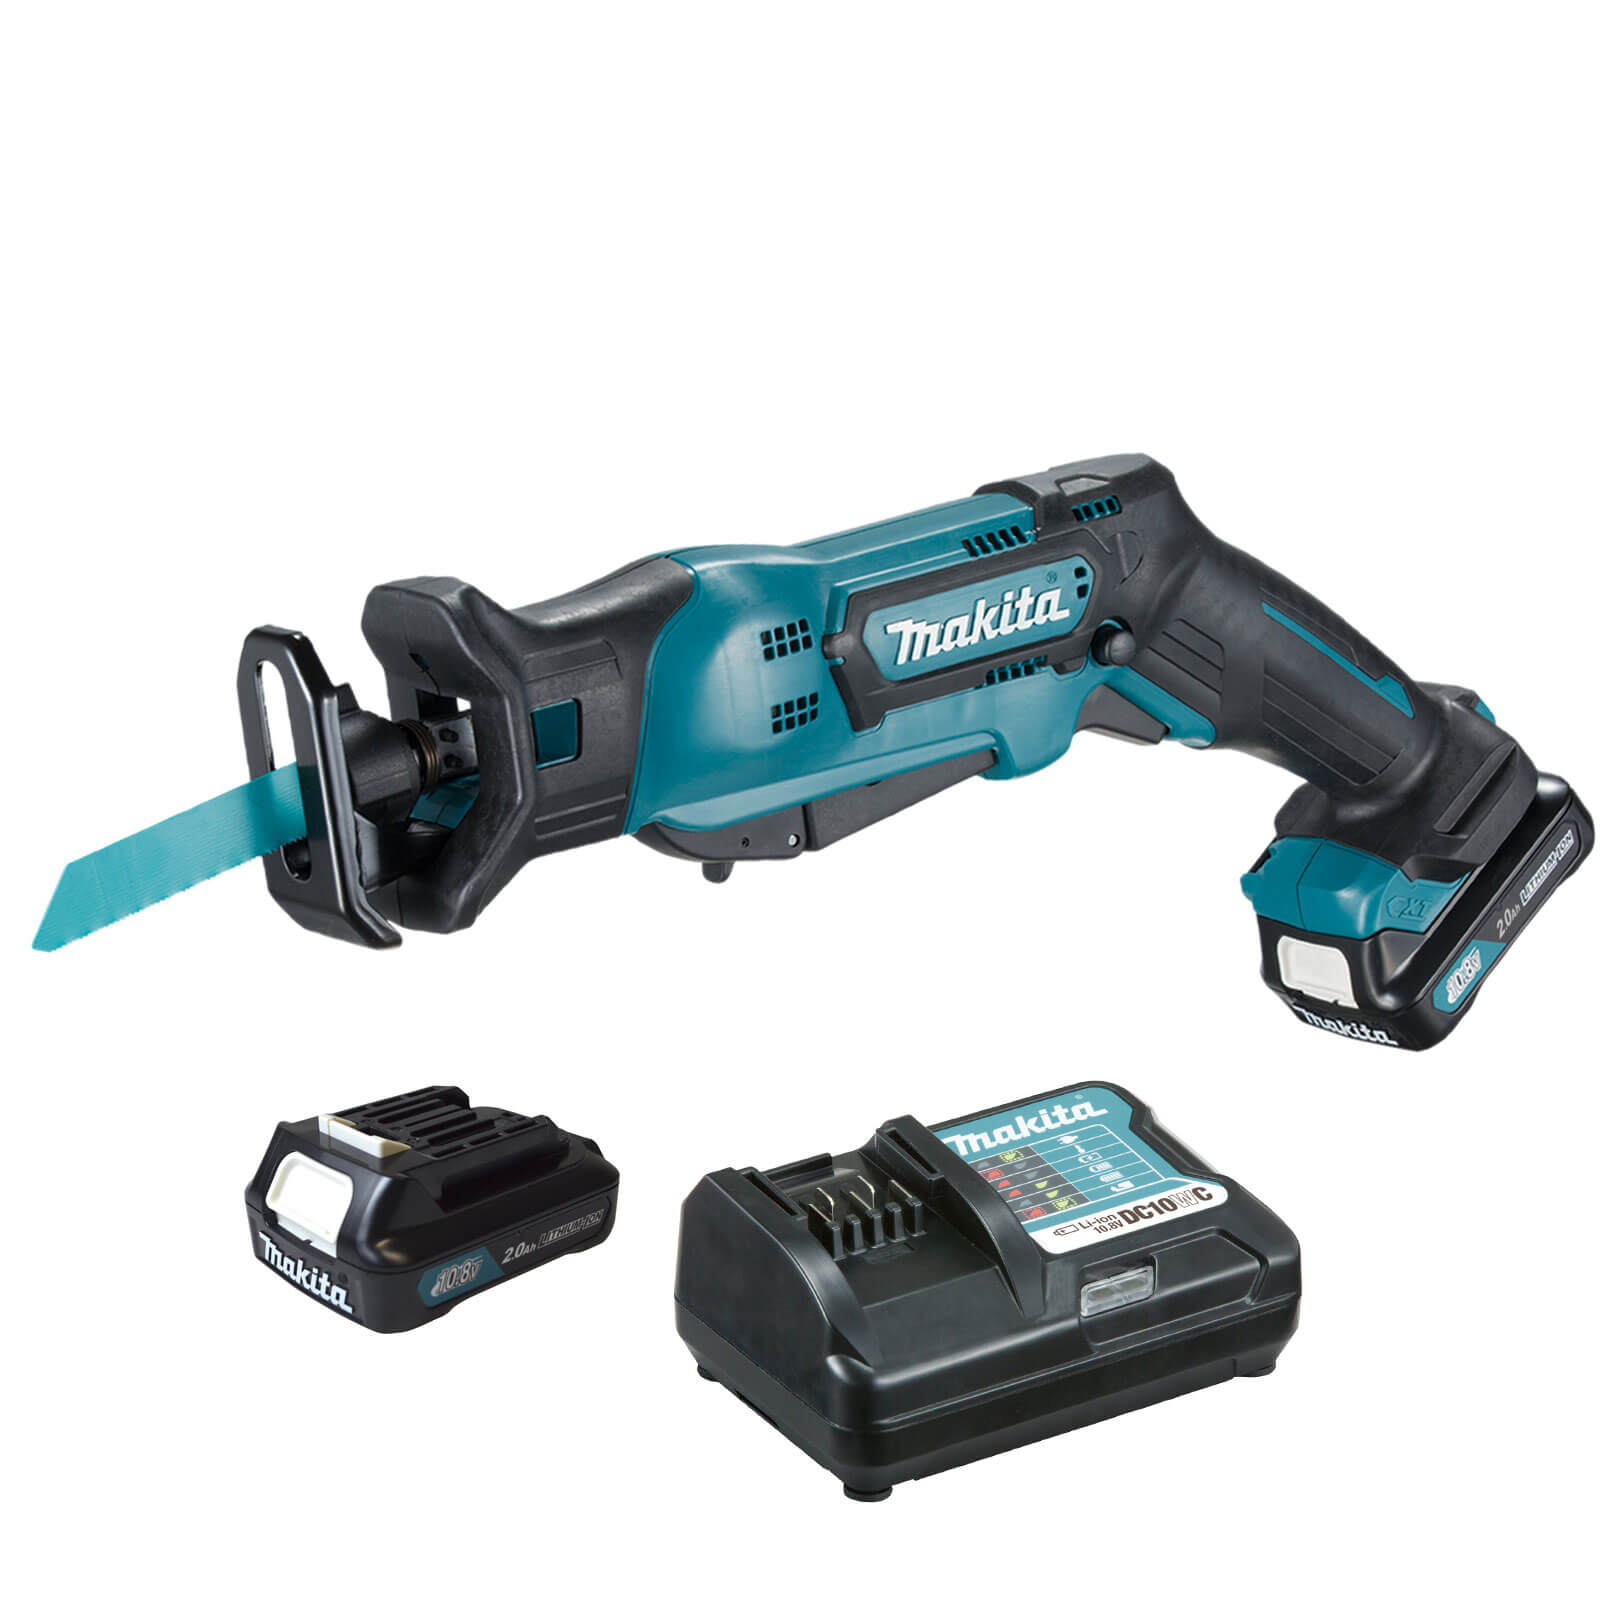 Image of Makita JR103DZ 10.8v Cordless CXT Reciprocating Saw with 2 Lithium Ion Batteries 2ah